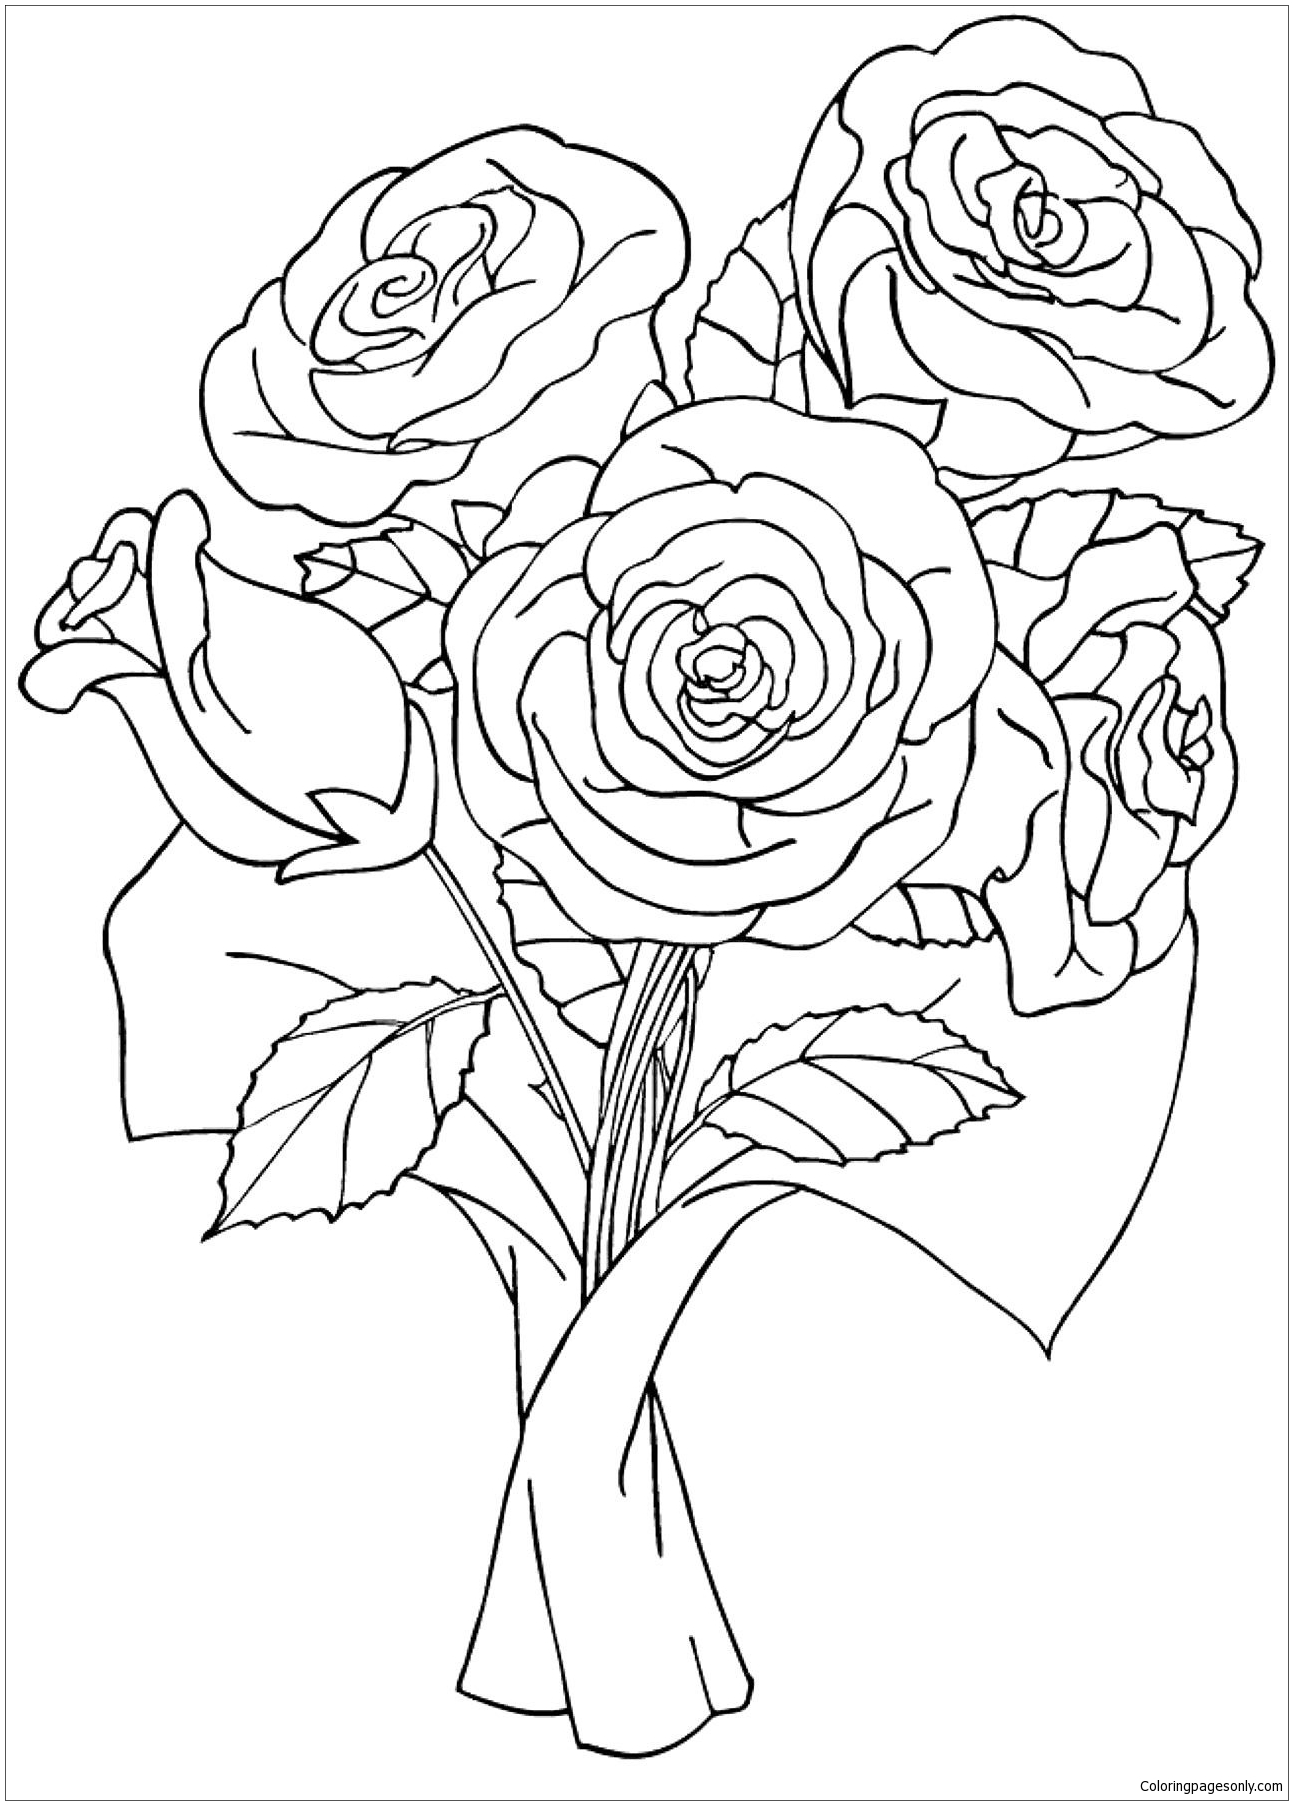 coloring sheet rose flower coloring pages rose flower for beautiful lady coloring page download flower rose pages sheet coloring coloring